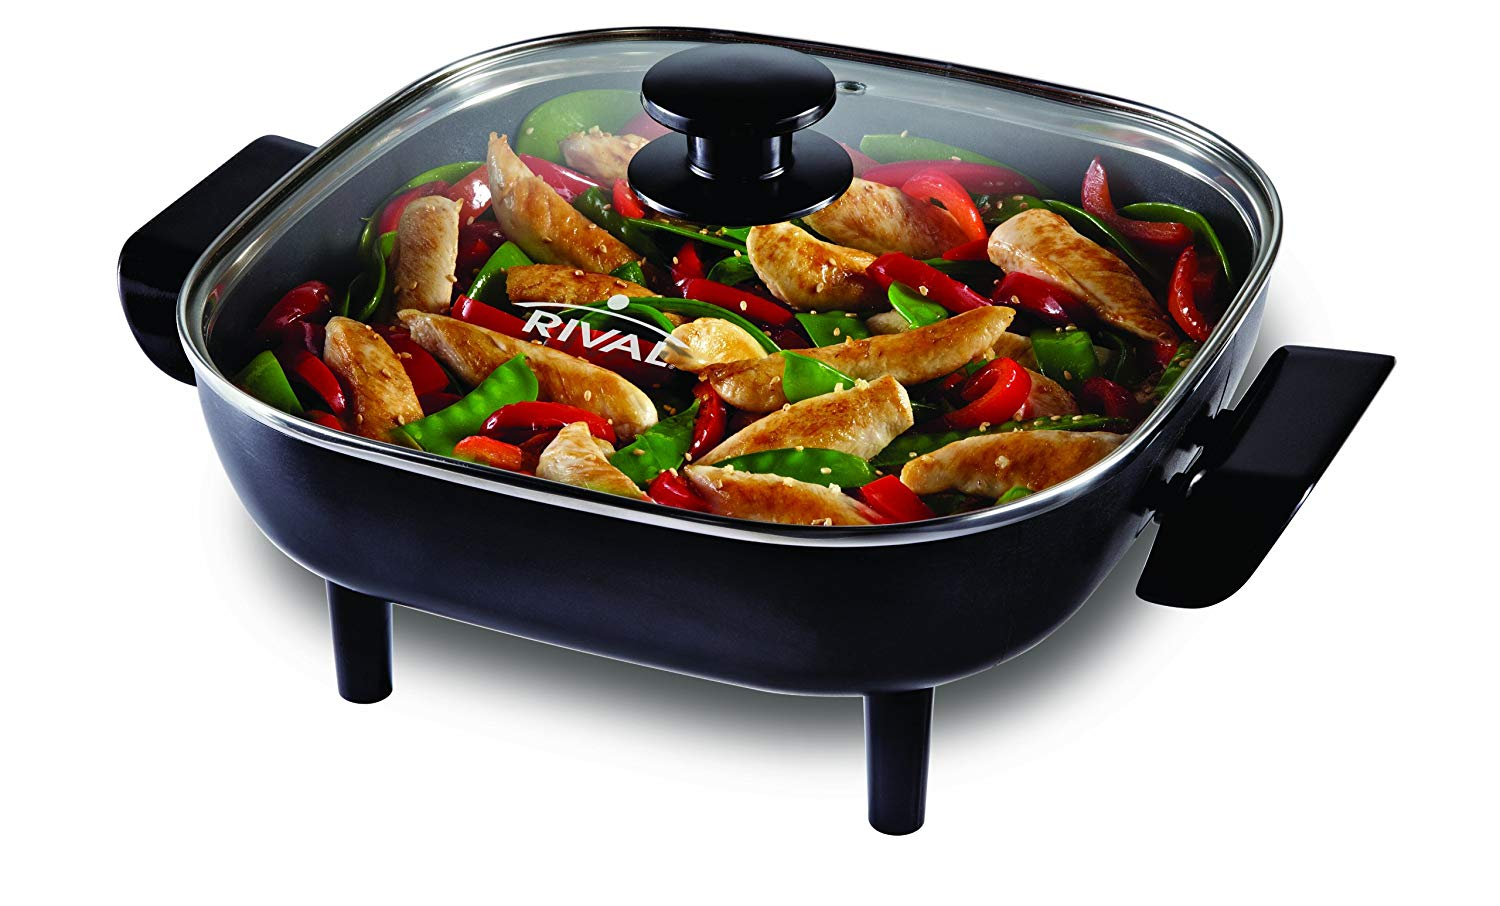 10 Best Electric Skillets of 2019 | Reviews 6